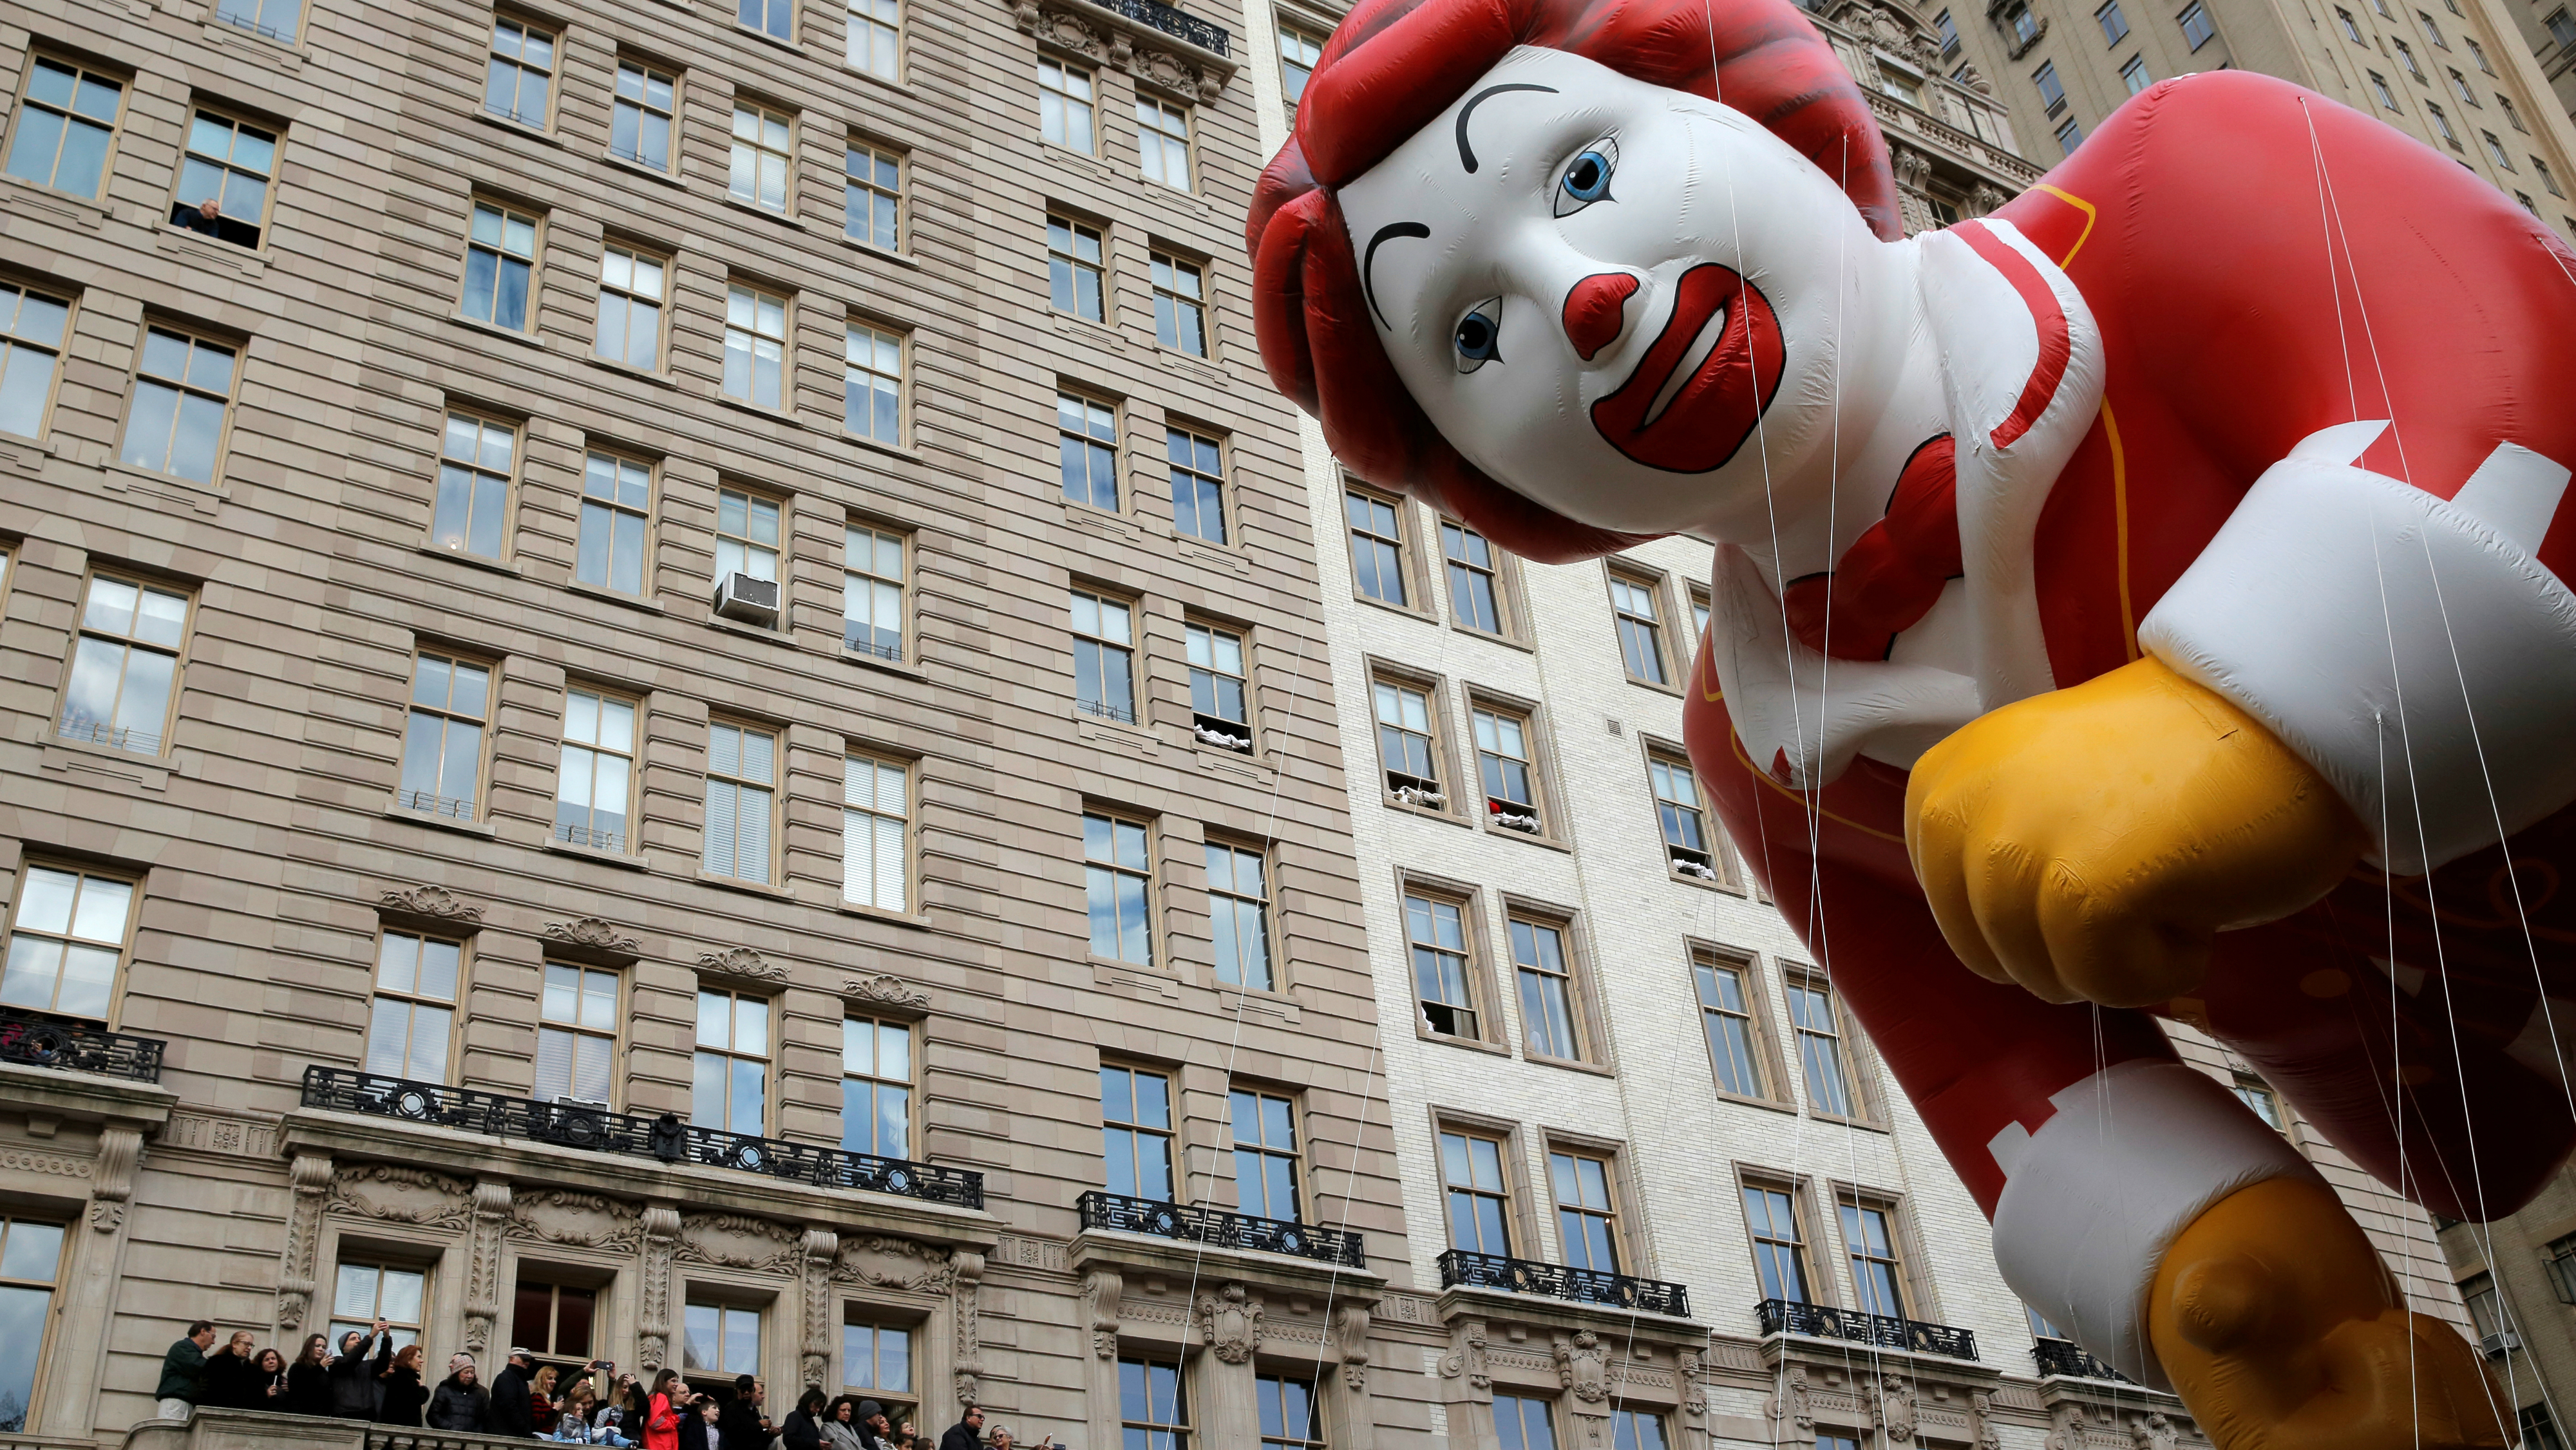 McDonald's faces the heat to change.